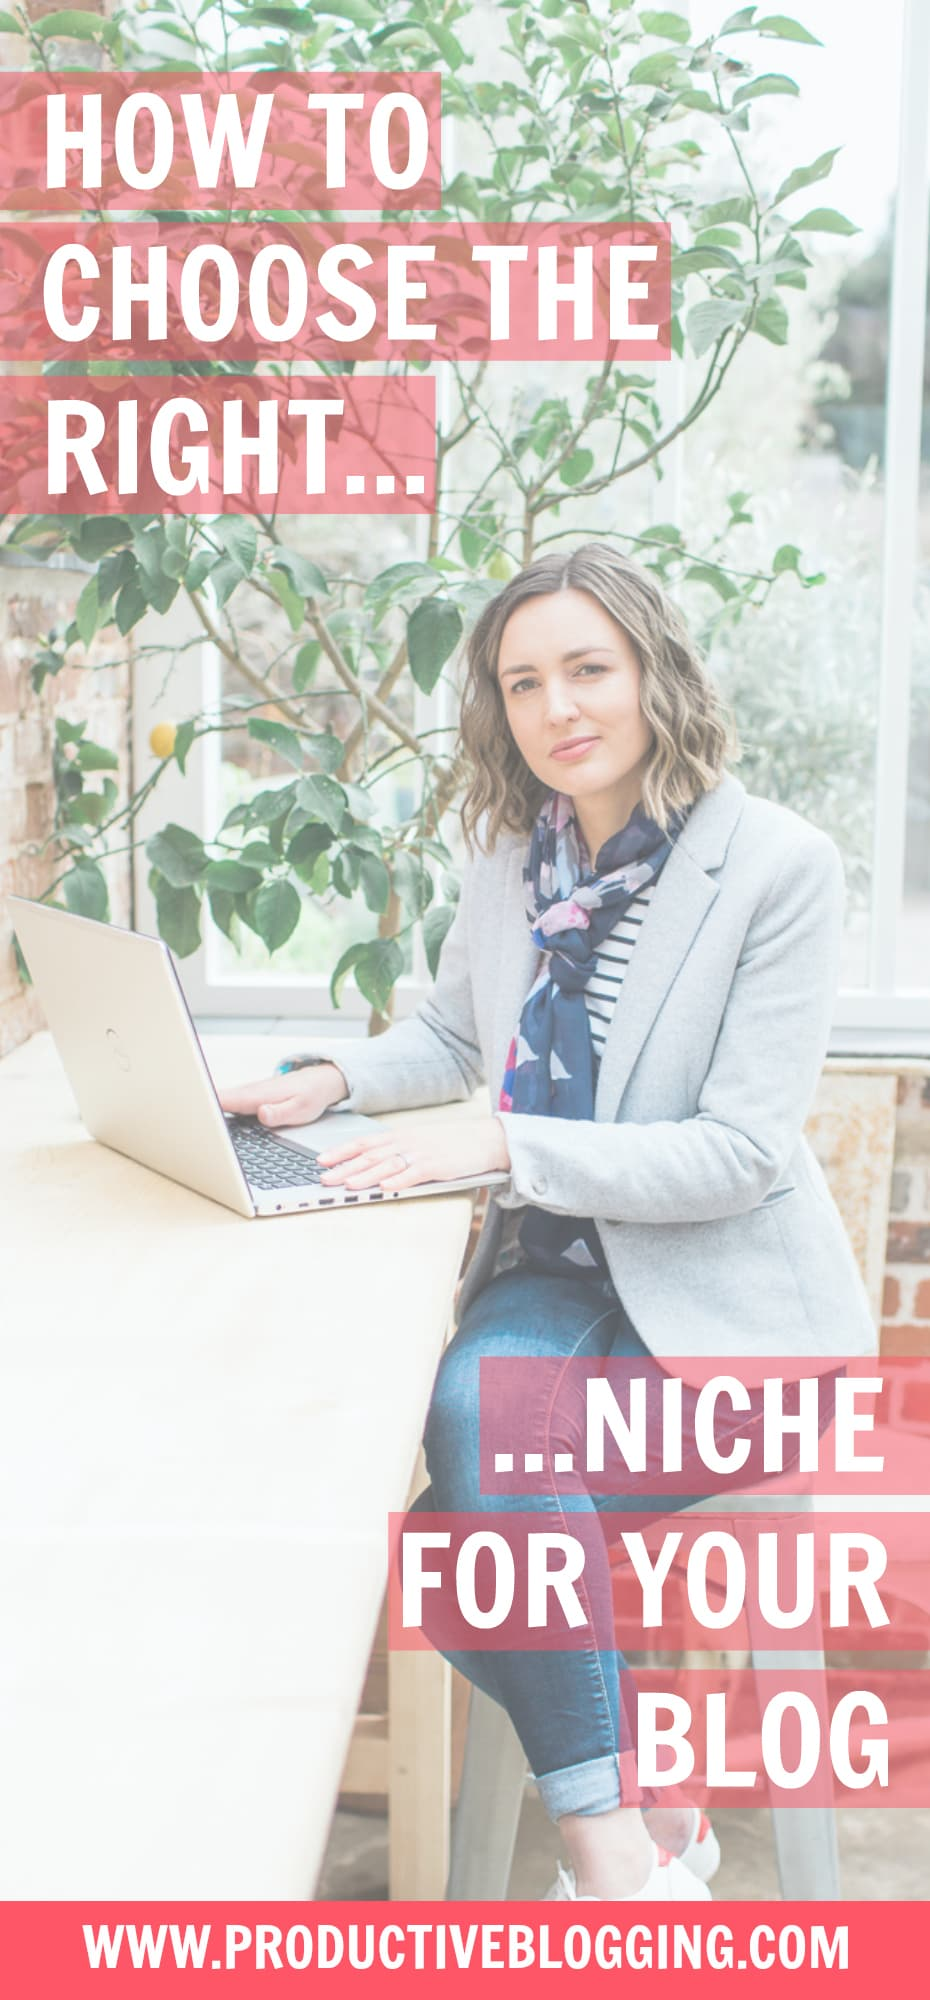 Choosing your blog topic can be so hard! There are so many options. You can blog about almost anything. But that makes it so tricky to decide on the right niche. Read on to discover how to choose the right niche for your blog – and whether you really need a one at all! #niche #bloggingniche #blogniche #blog #blogging #blogger #bloggingtips #blogpost #productiveblogging #productivity